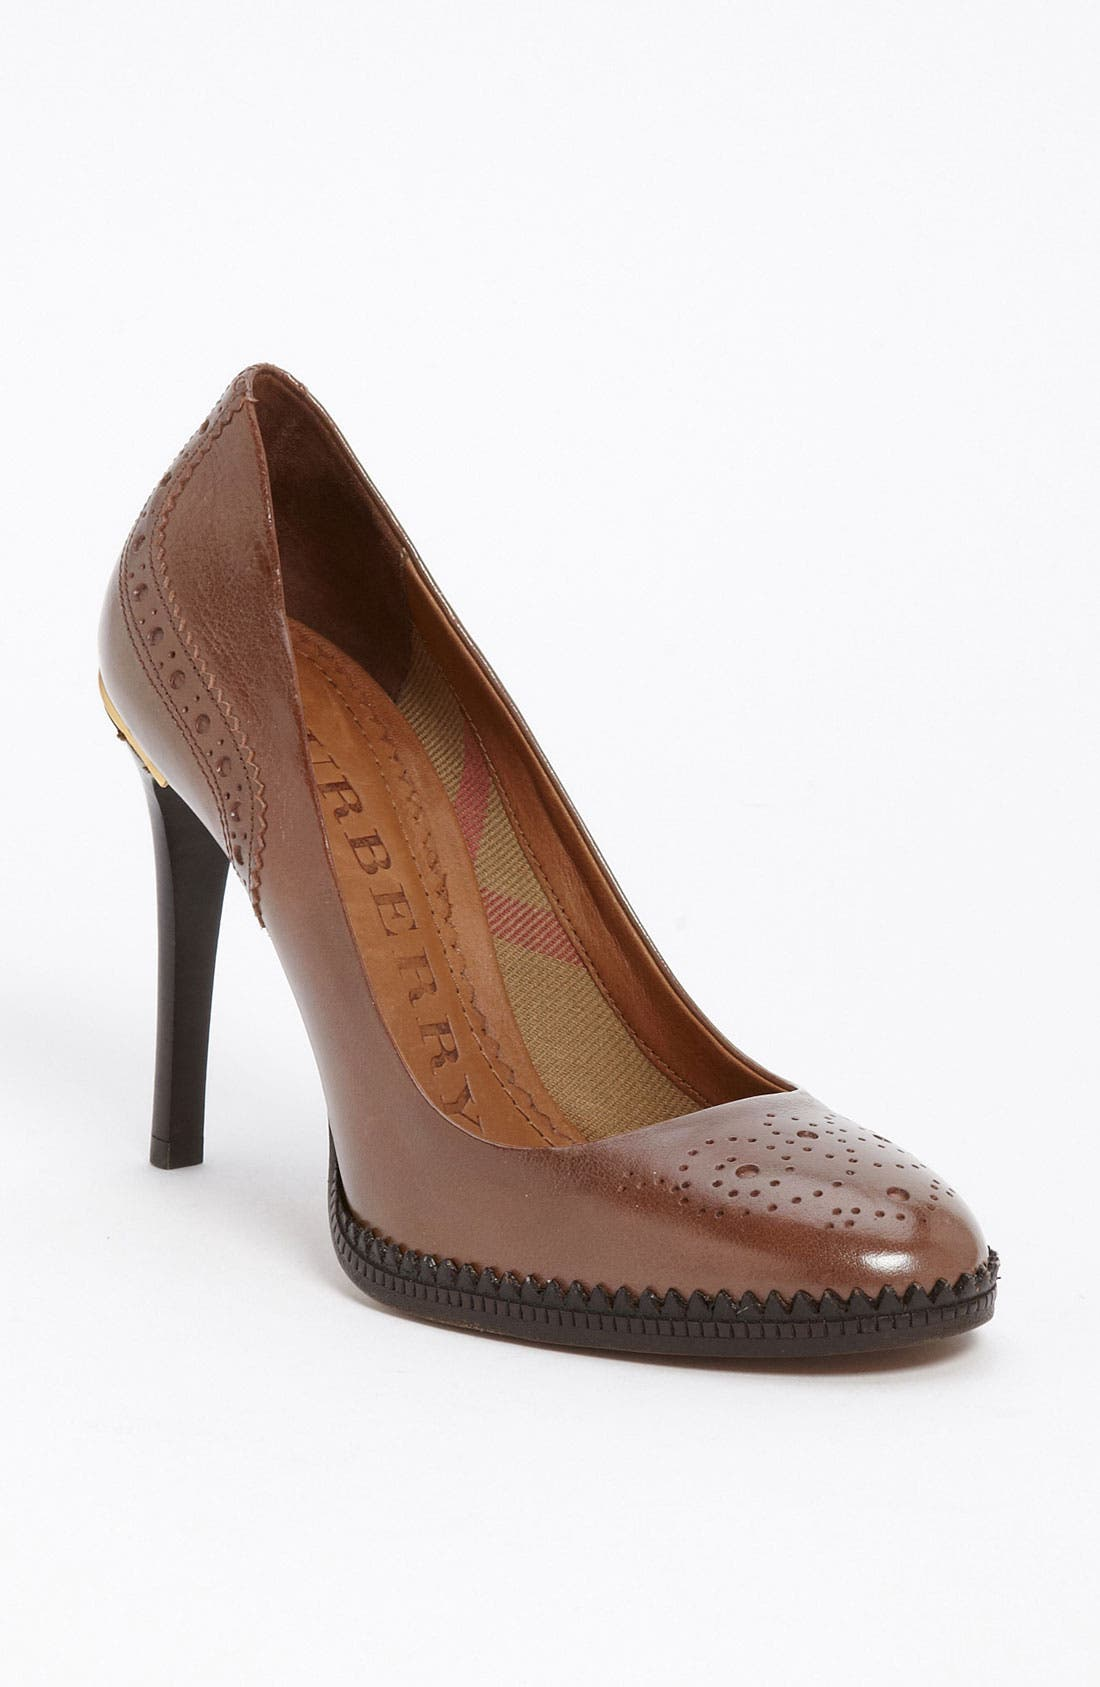 Main Image - Burberry Brogue Pump